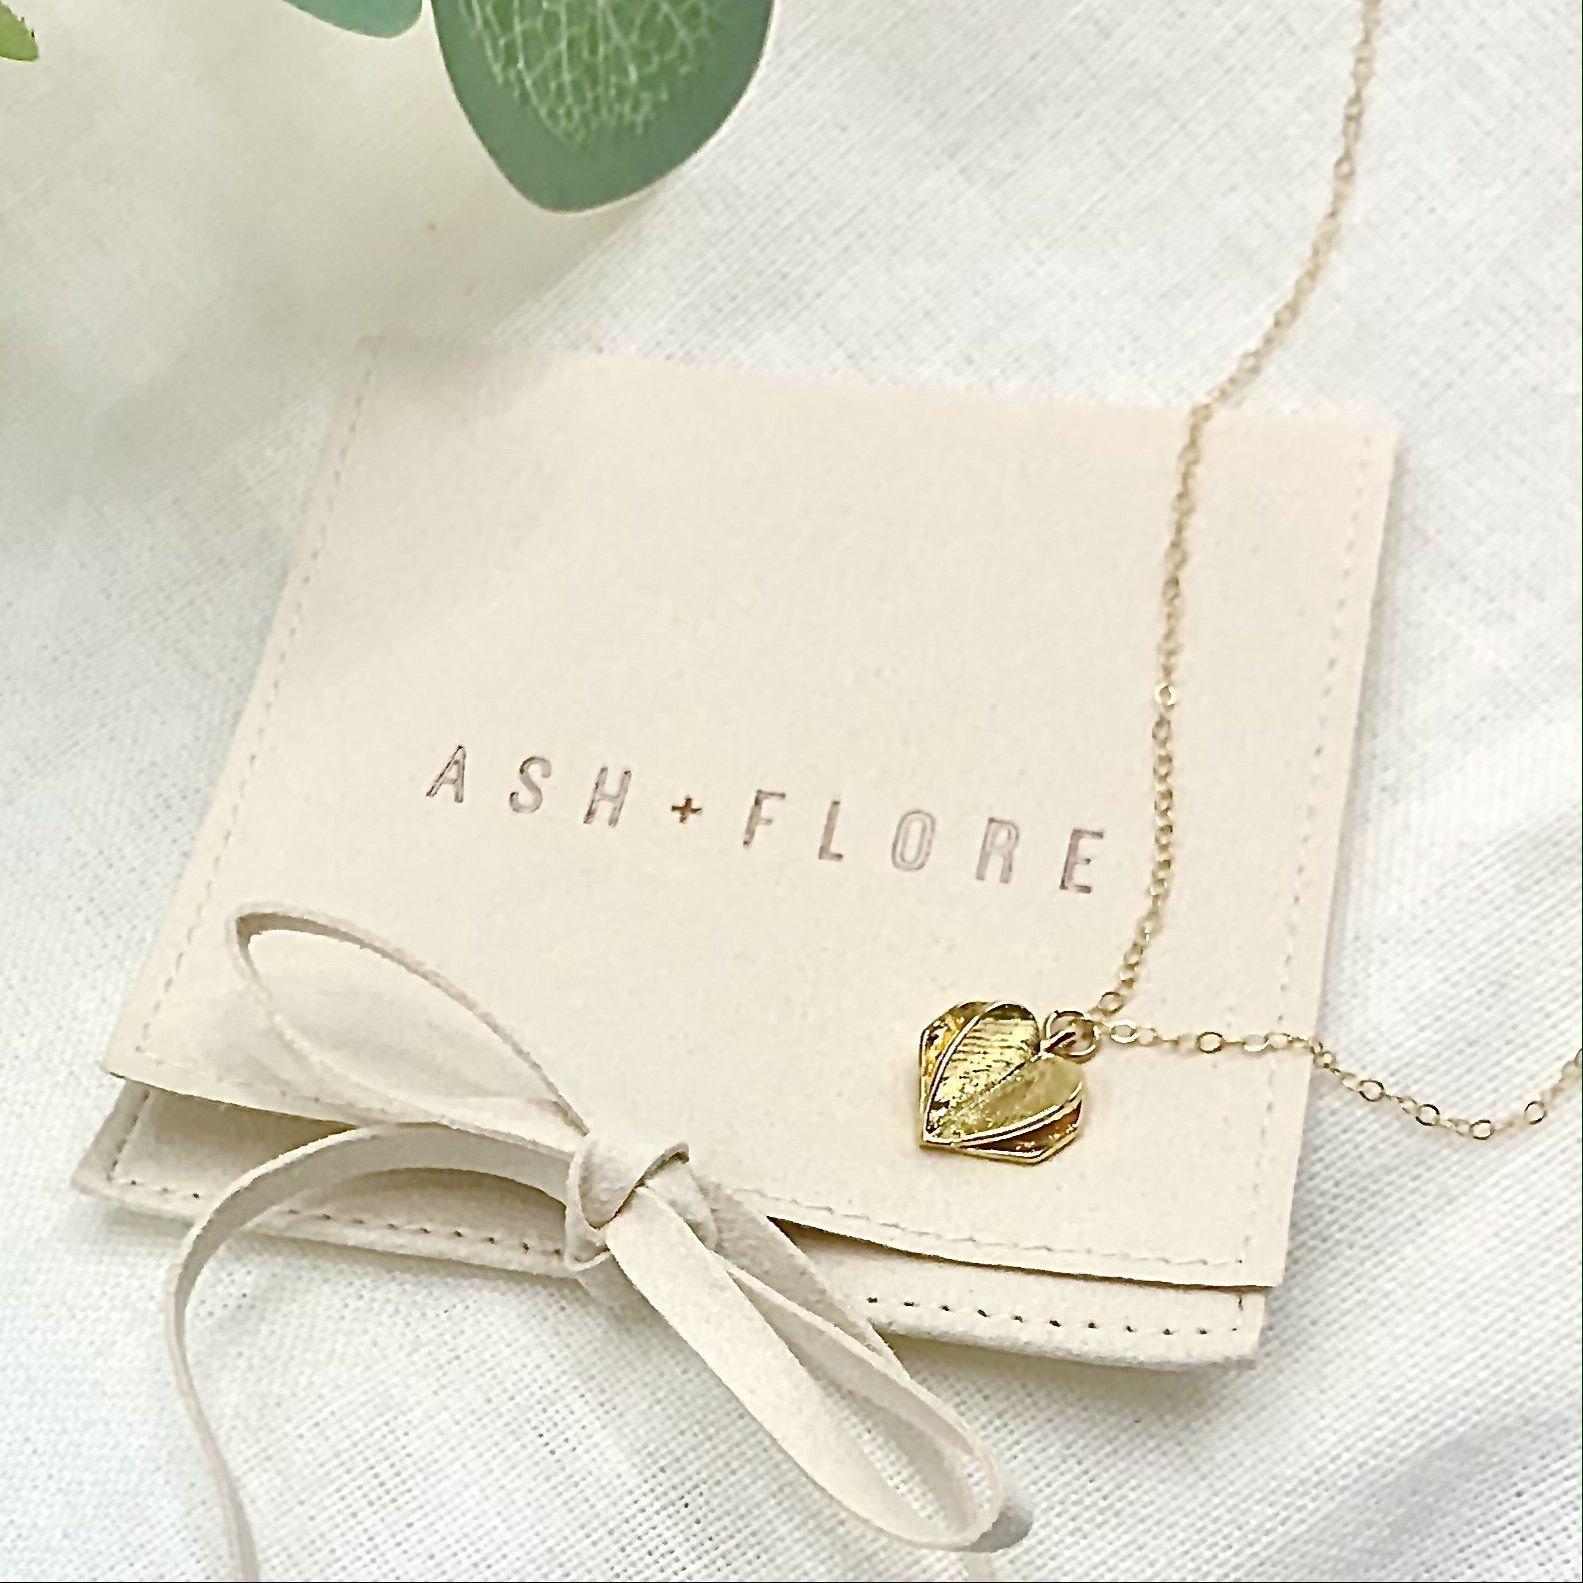 """Minimal, modern yet timeless, our EVER collection of elevated jewelry is made from beautiful, quality components with the modern woman's busy lifestyle in mind. Featuring both elegant & understated pieces you'll want to wear 24/7, you're certain to find the perfect match for your unique style! Our AMOR necklace is ALL about honoring love (even the name means """"love"""" in Latin), whether it be a mother's love, love between you and your significant other, or the love between dear friends. Love is"""